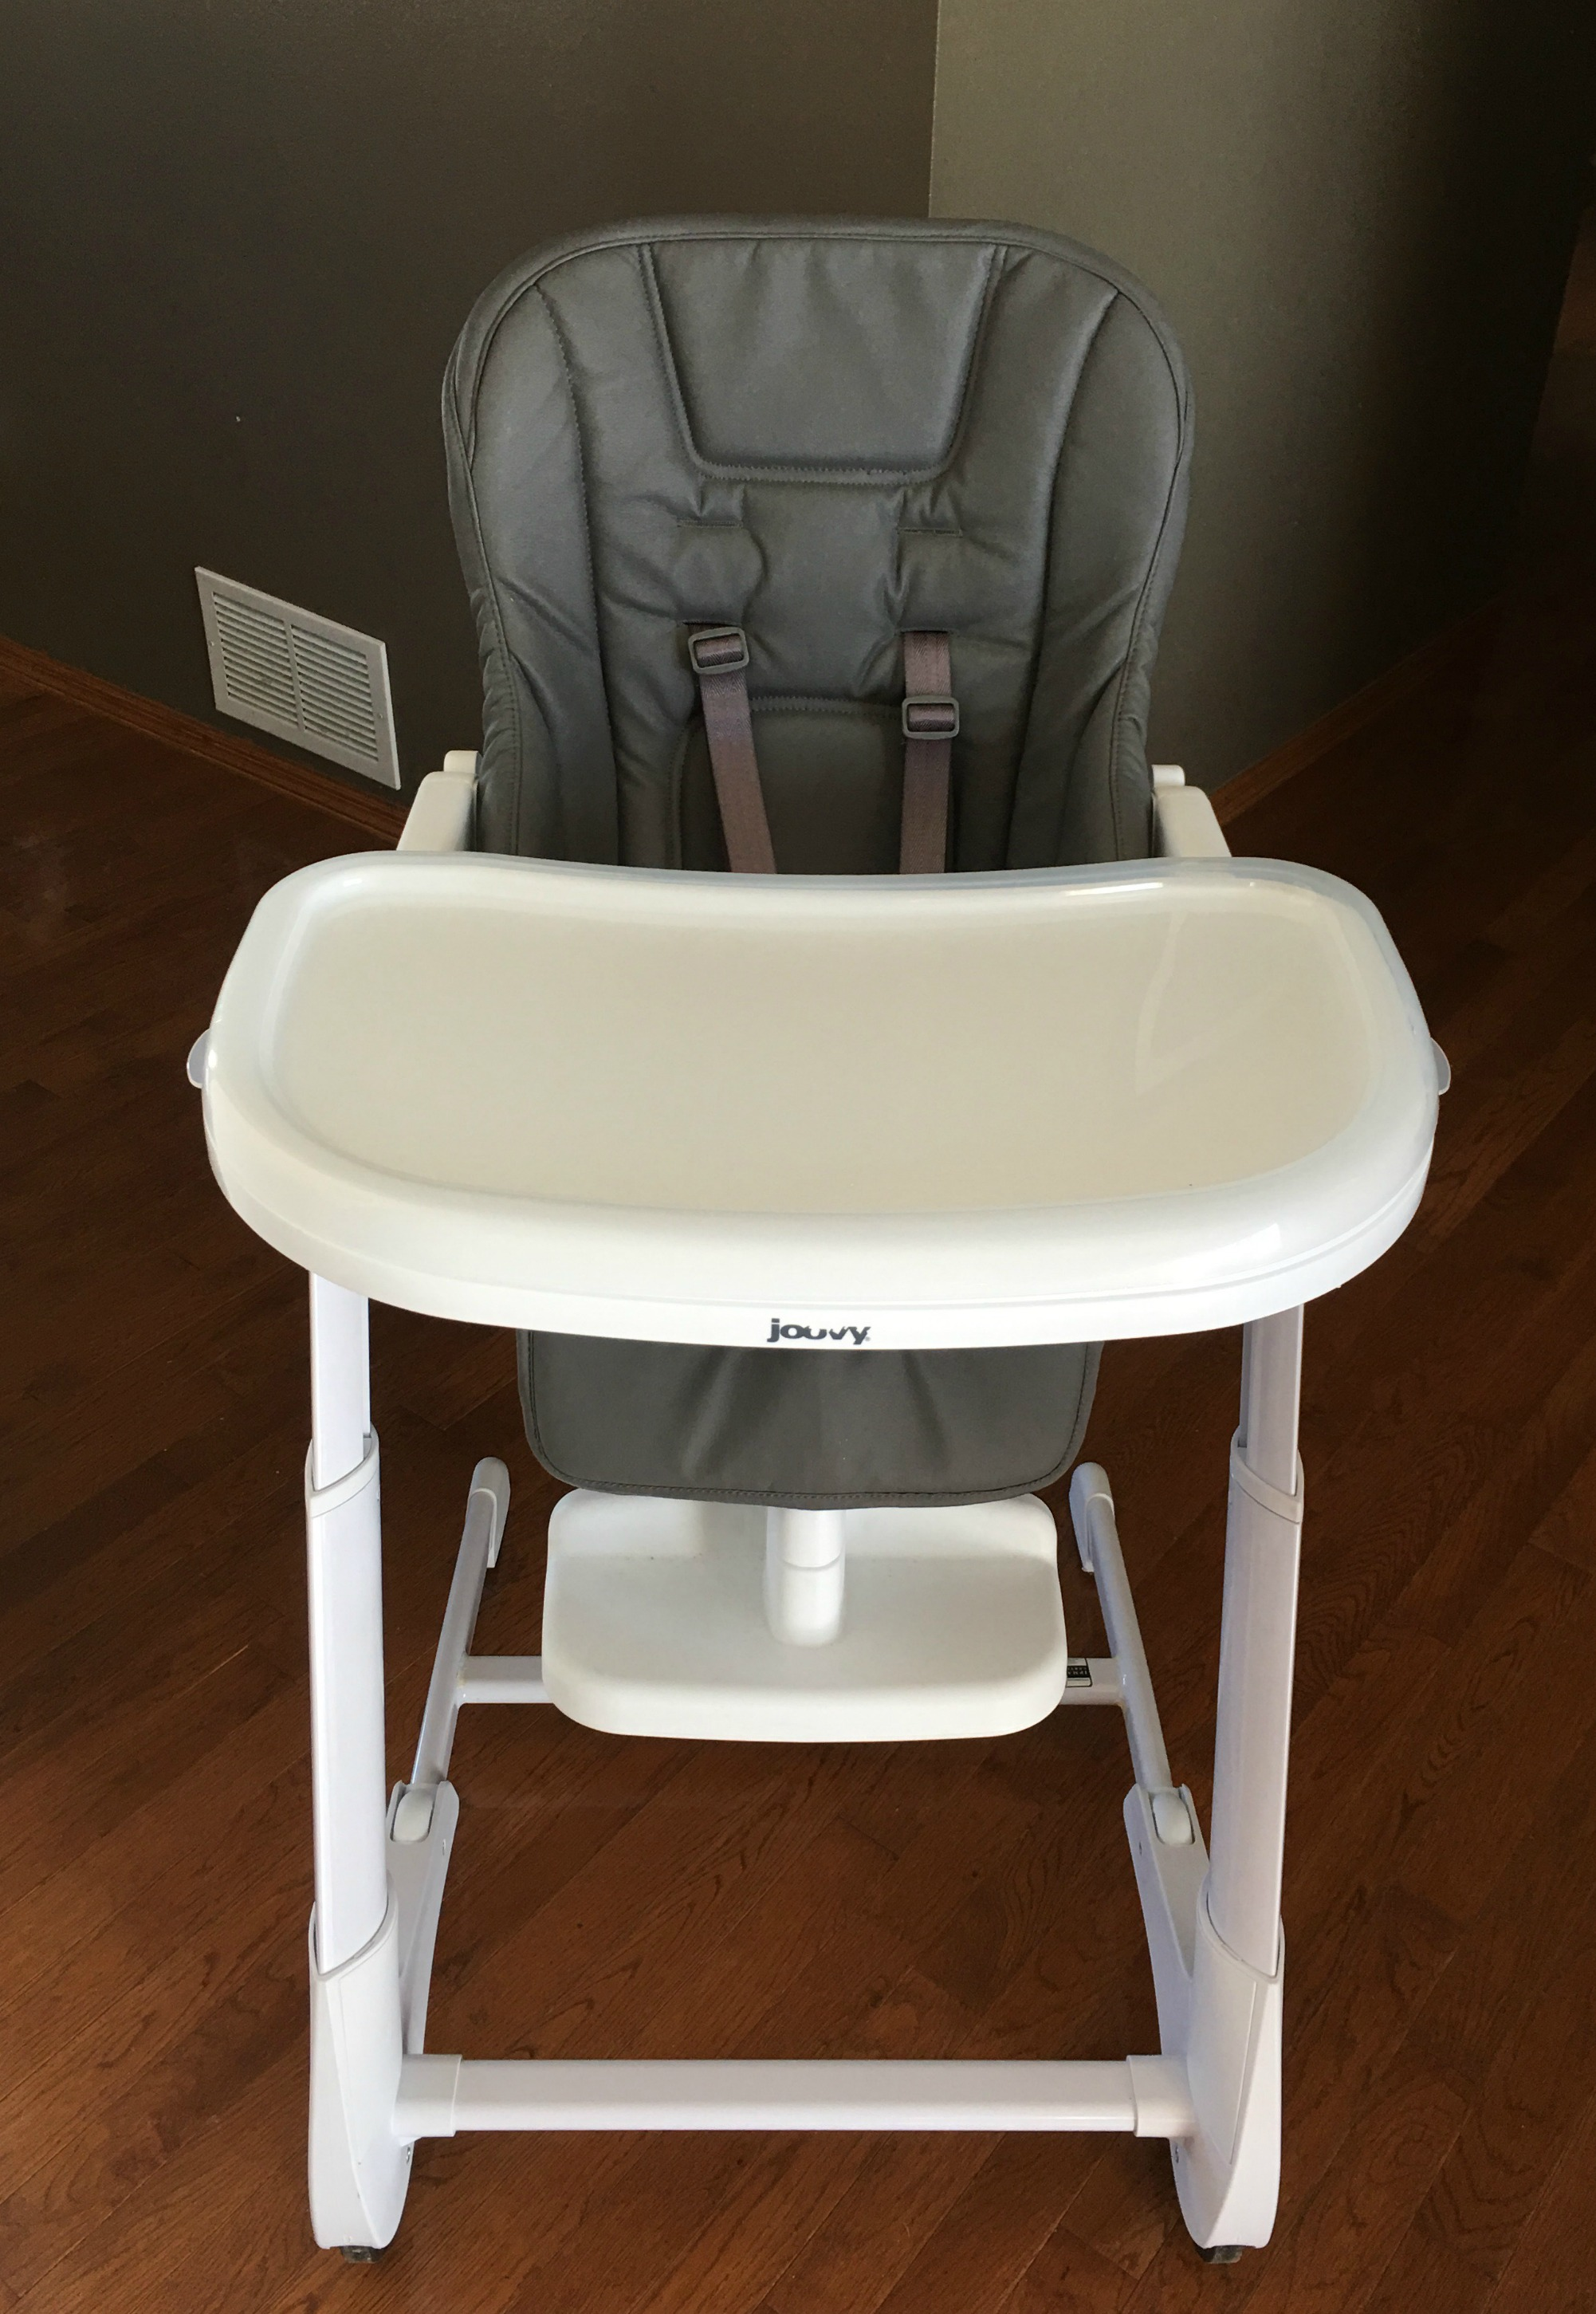 Best High Chair Review Joovy Foodoo High Chair Review Momma In Flip Flops